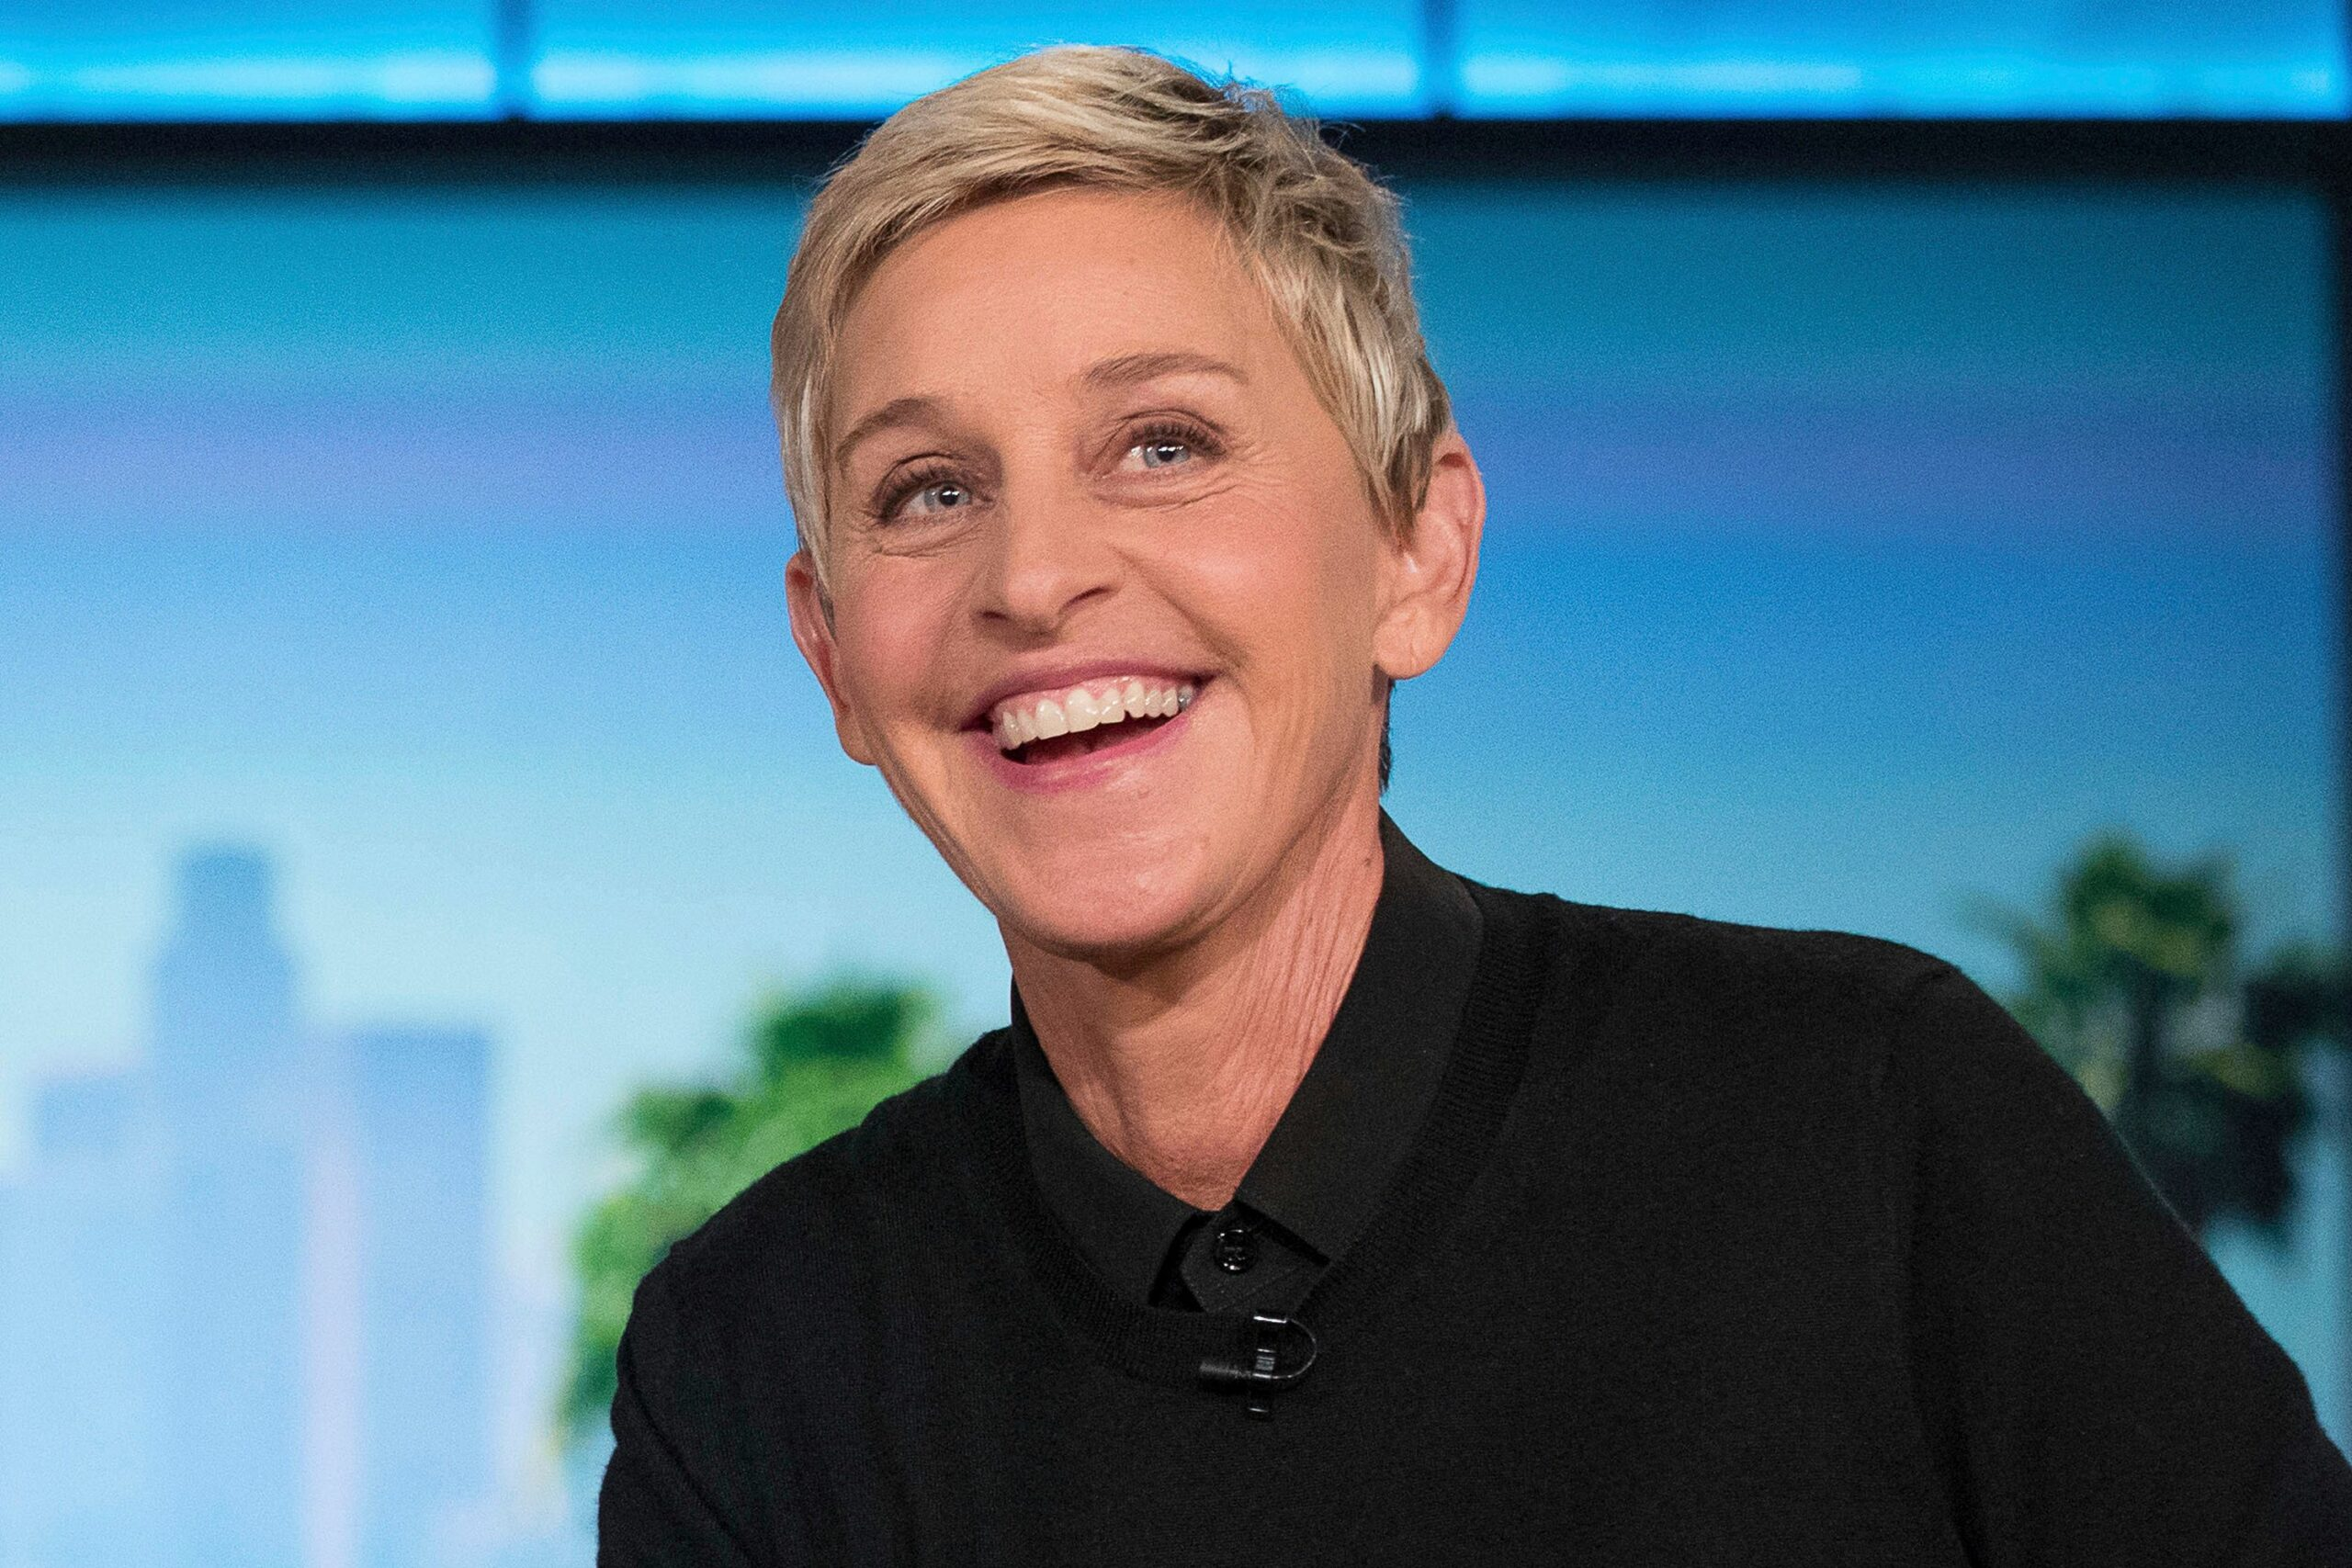 Former Employees of 'Ellen DeGeneres' Show said that the Working Environment was Toxic on the Set